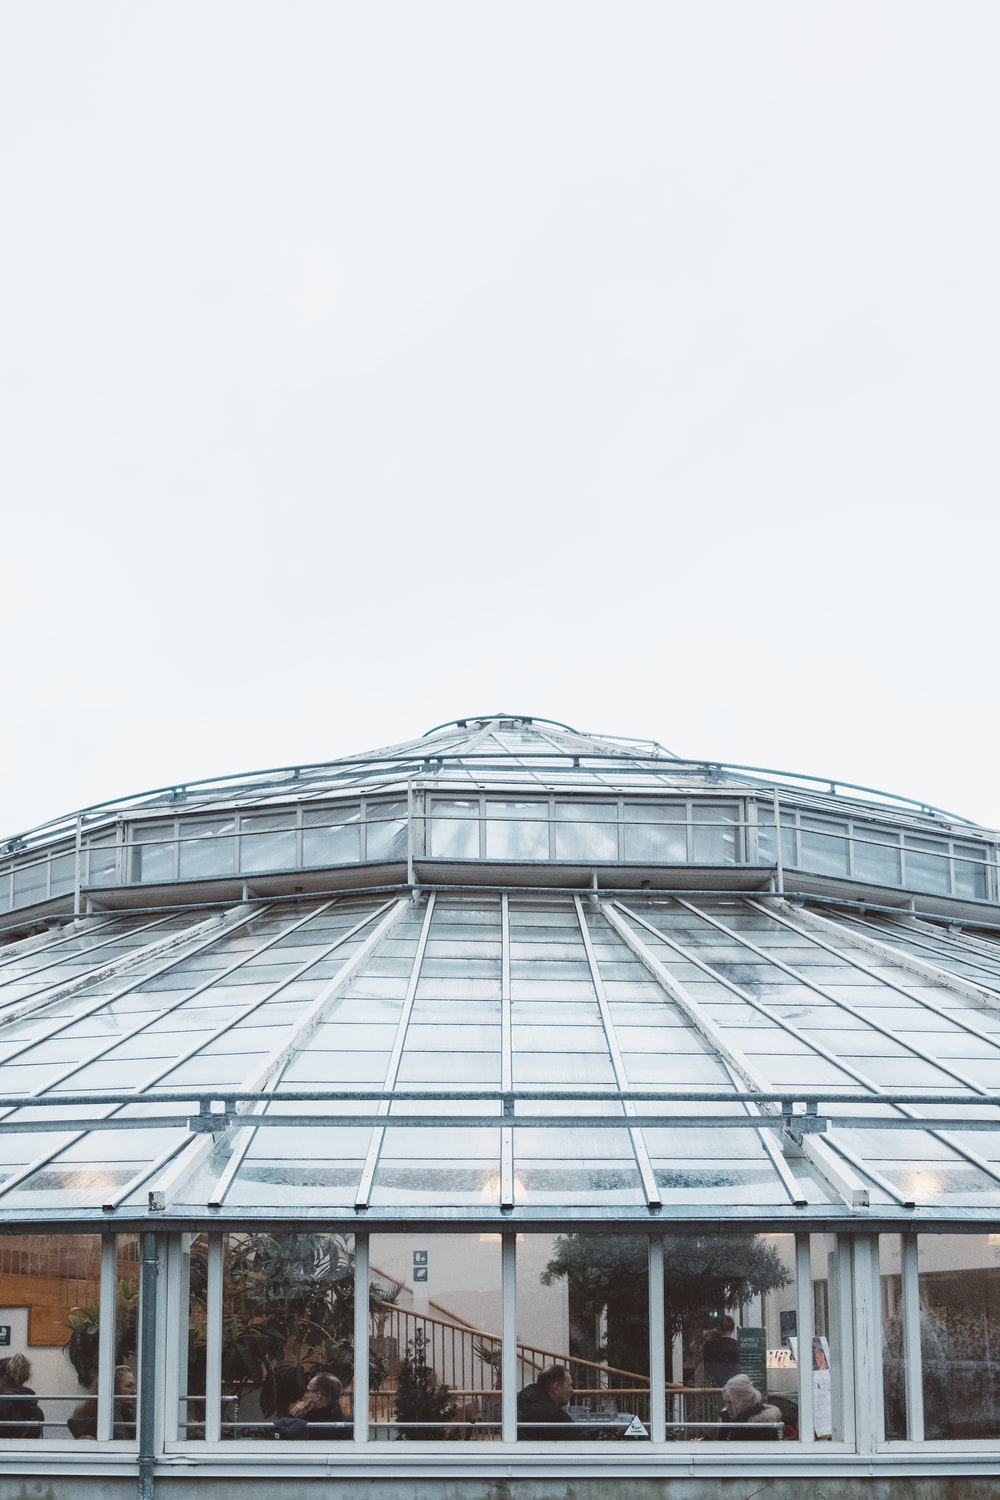 clear glass building during daytime